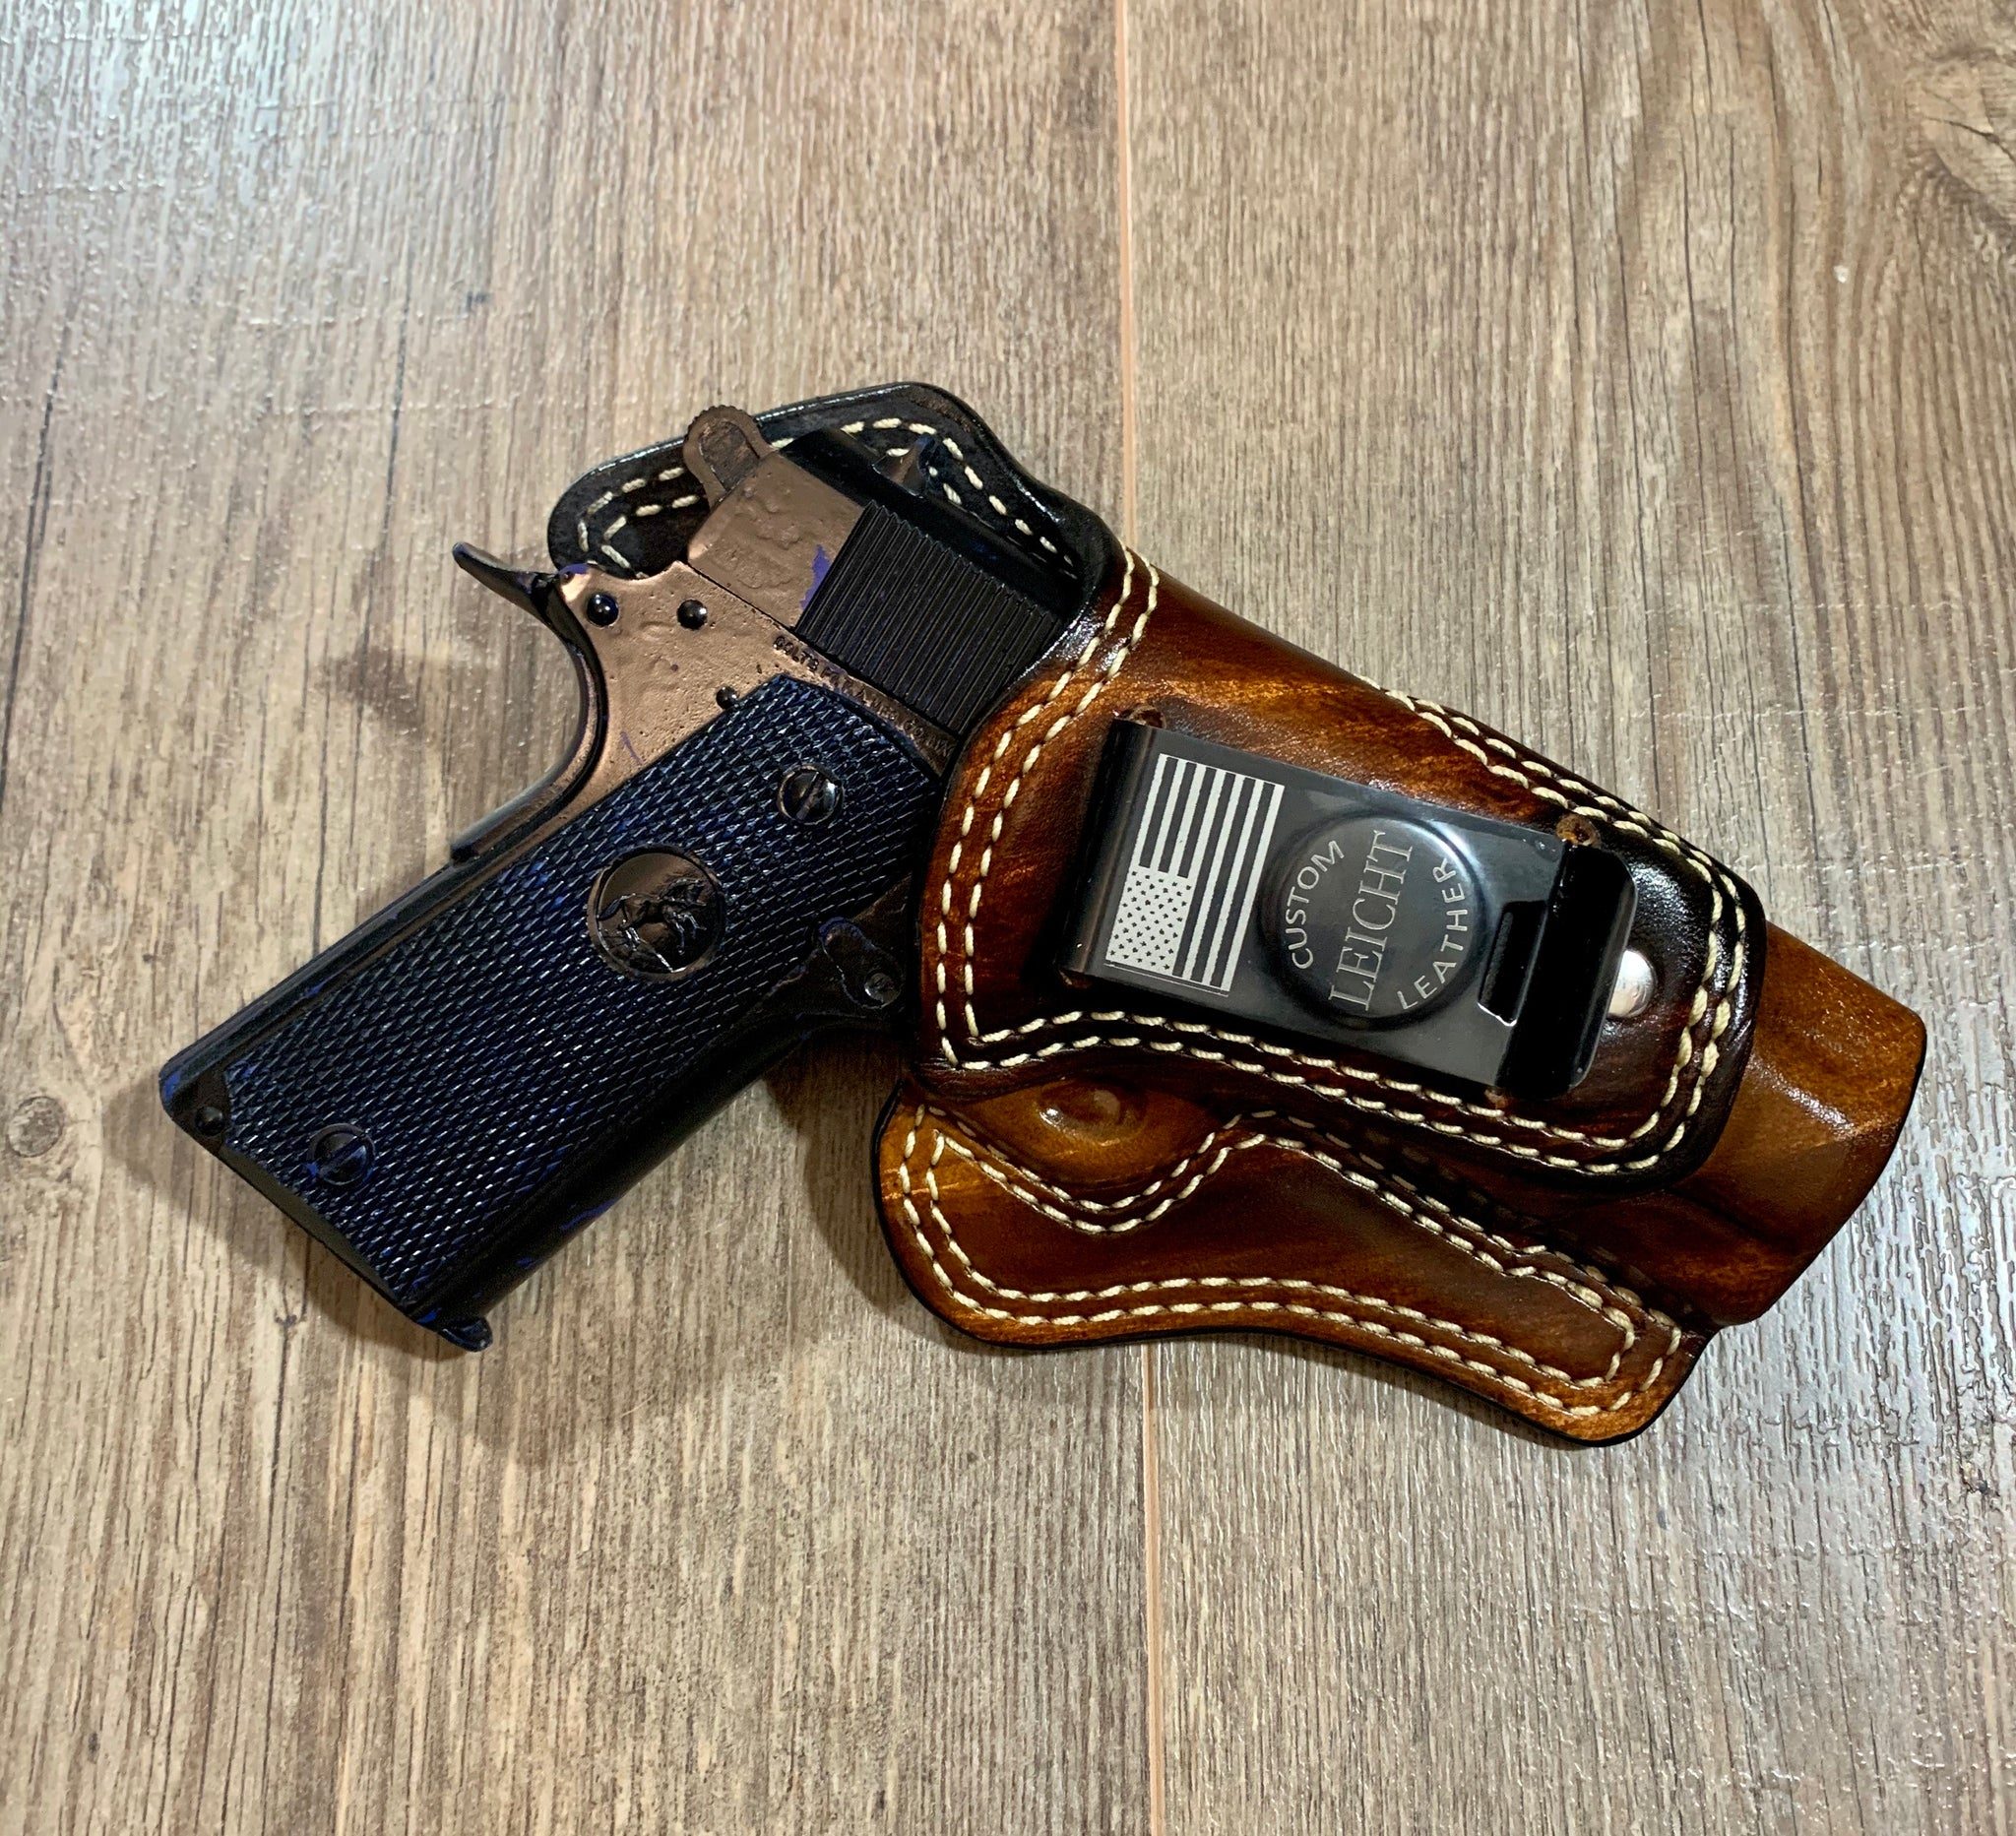 ED BROWN 1911 COMMANDER LENGTH IWB HOLSTER